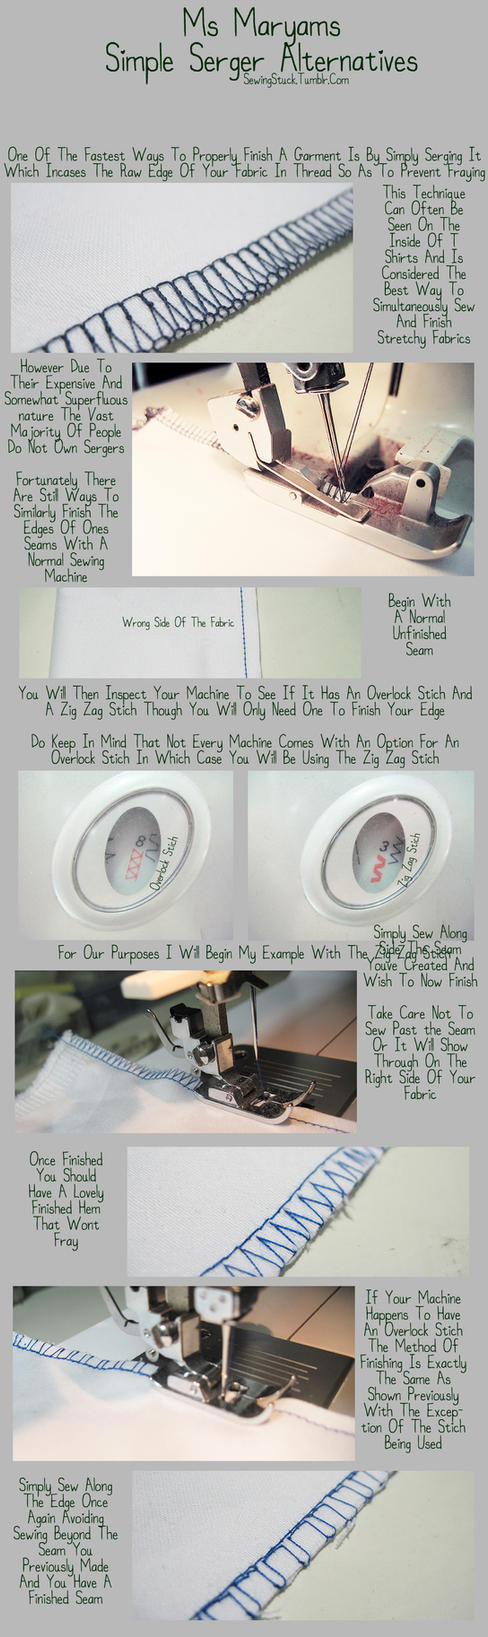 Sewingstuck - Serger Alternatives Tutorial by Mostflogged